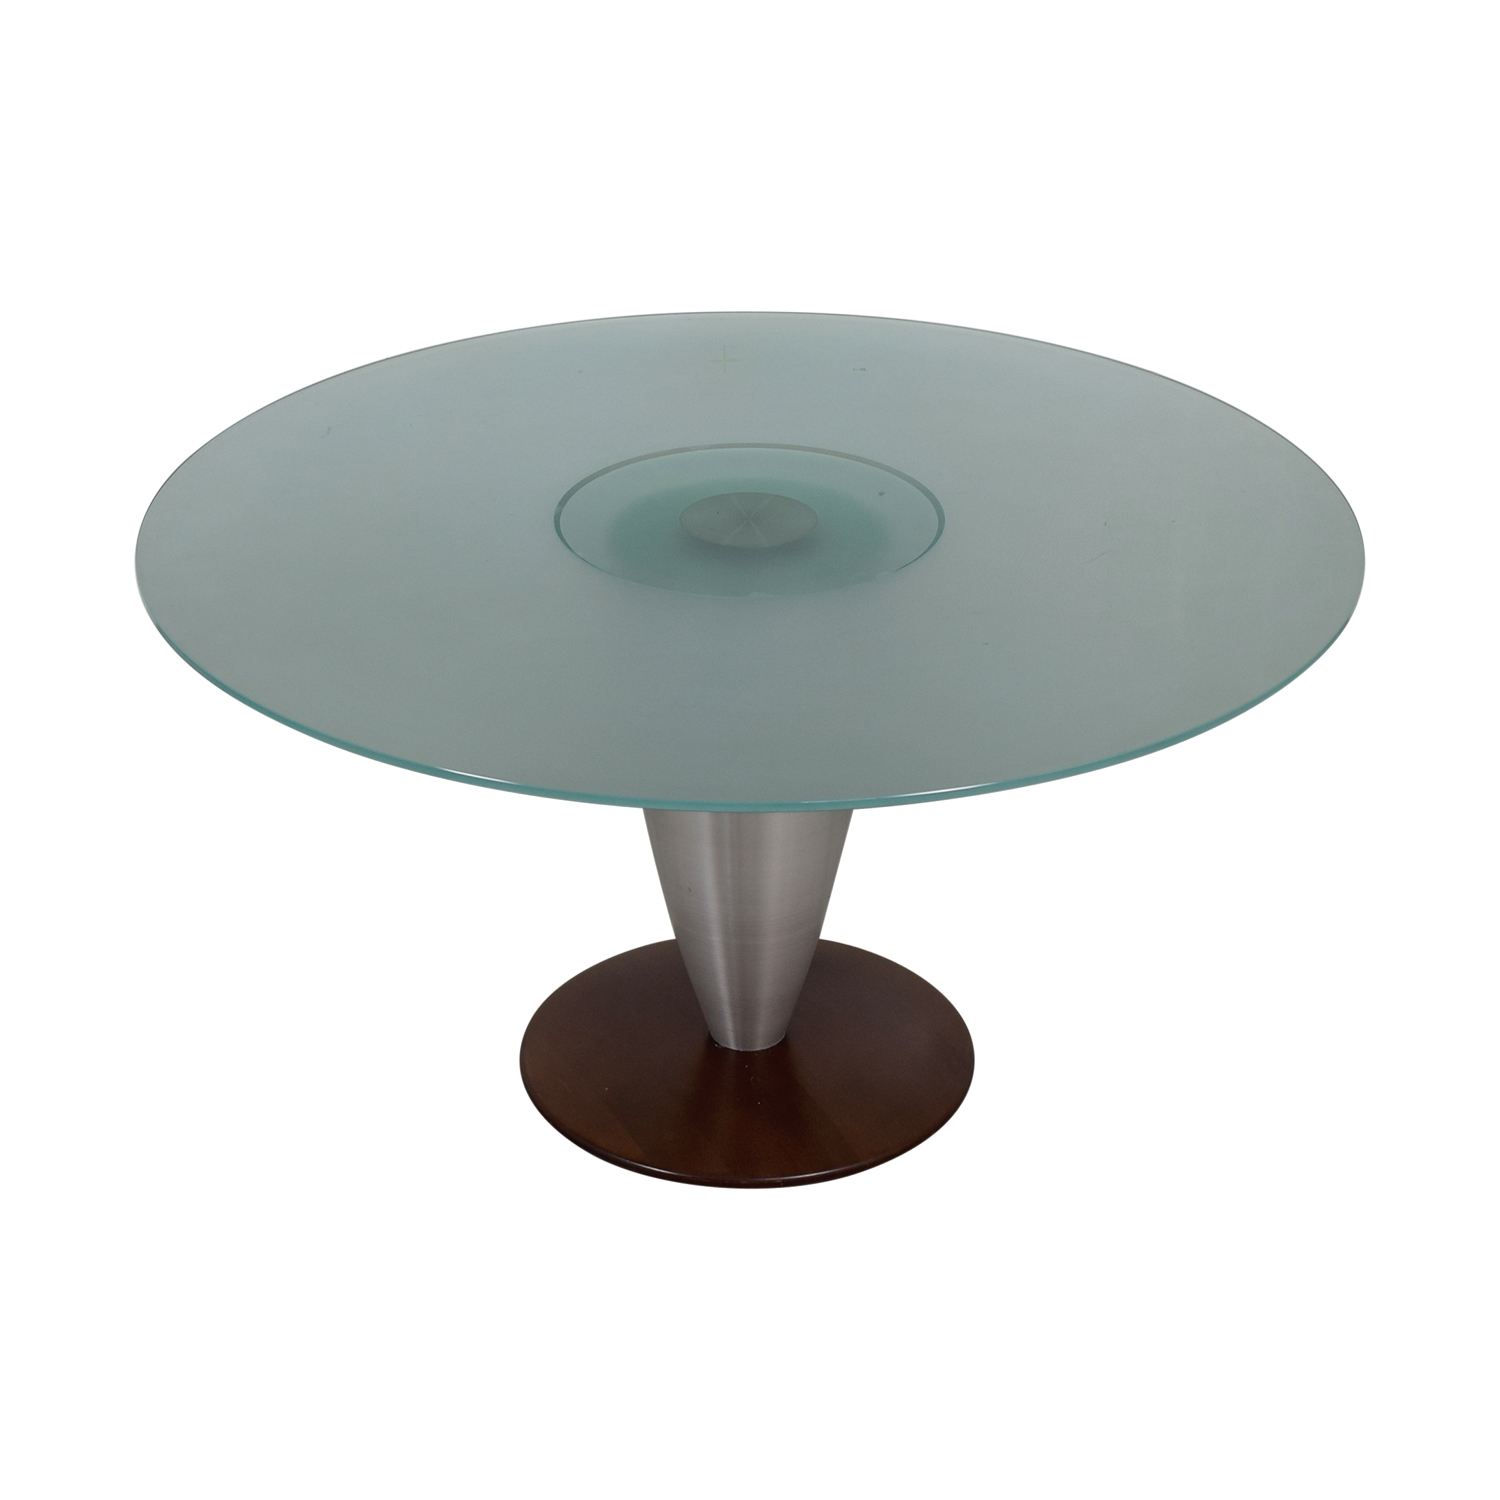 Design Studio Round Glass Dining Table / Dinner Tables